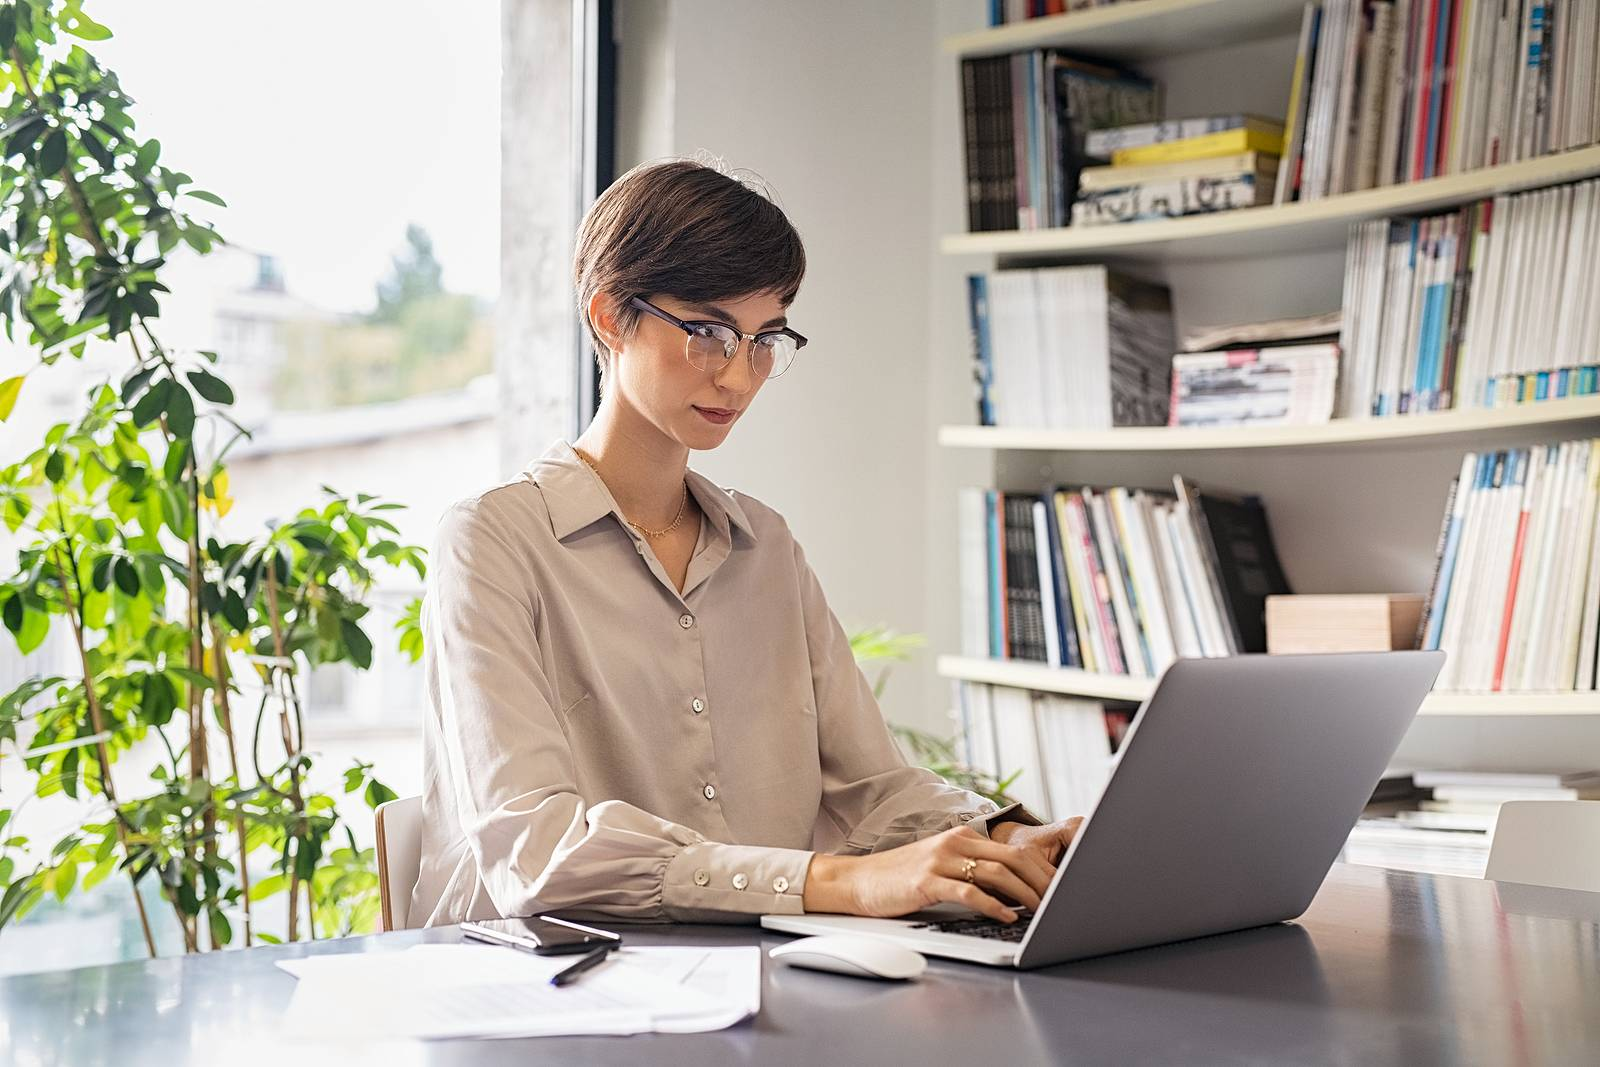 Young businesswoman sitting on her workplace in the office and working on laptop. Creative young woman using computer in meeting room. Business woman entrepreneur working from home in smart working.